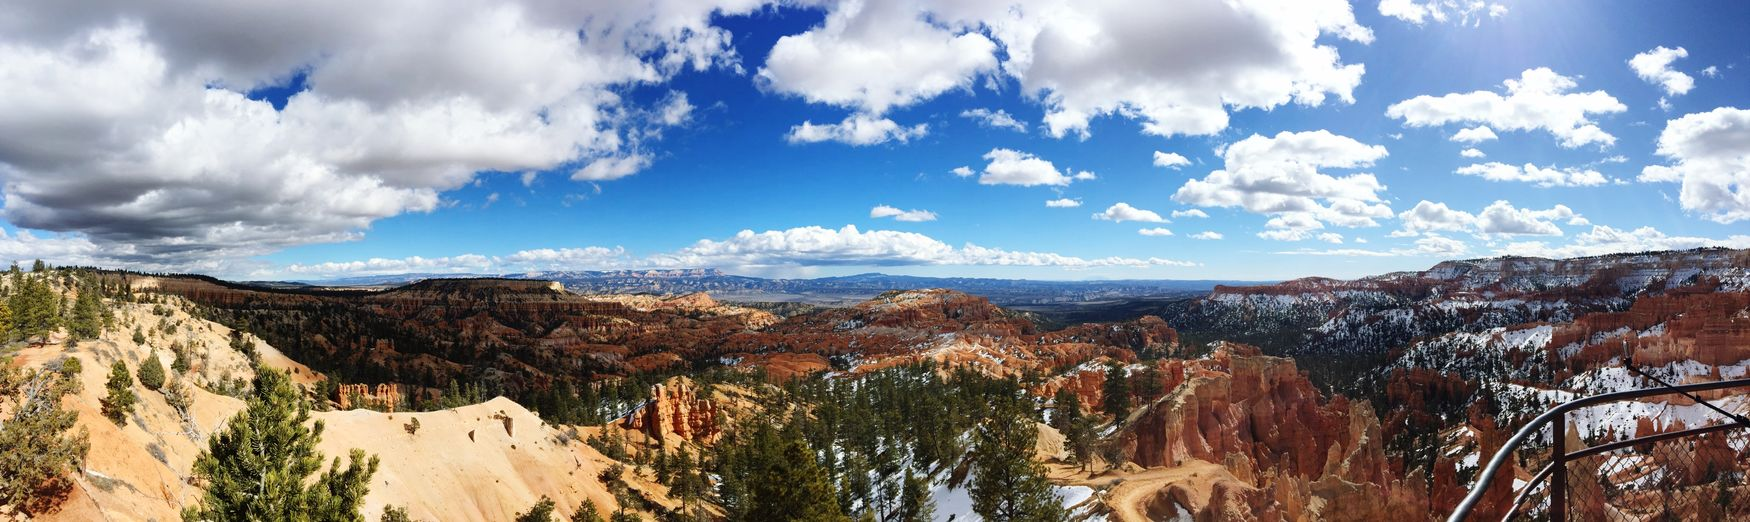 Bryce Canyon Western America Amazing View